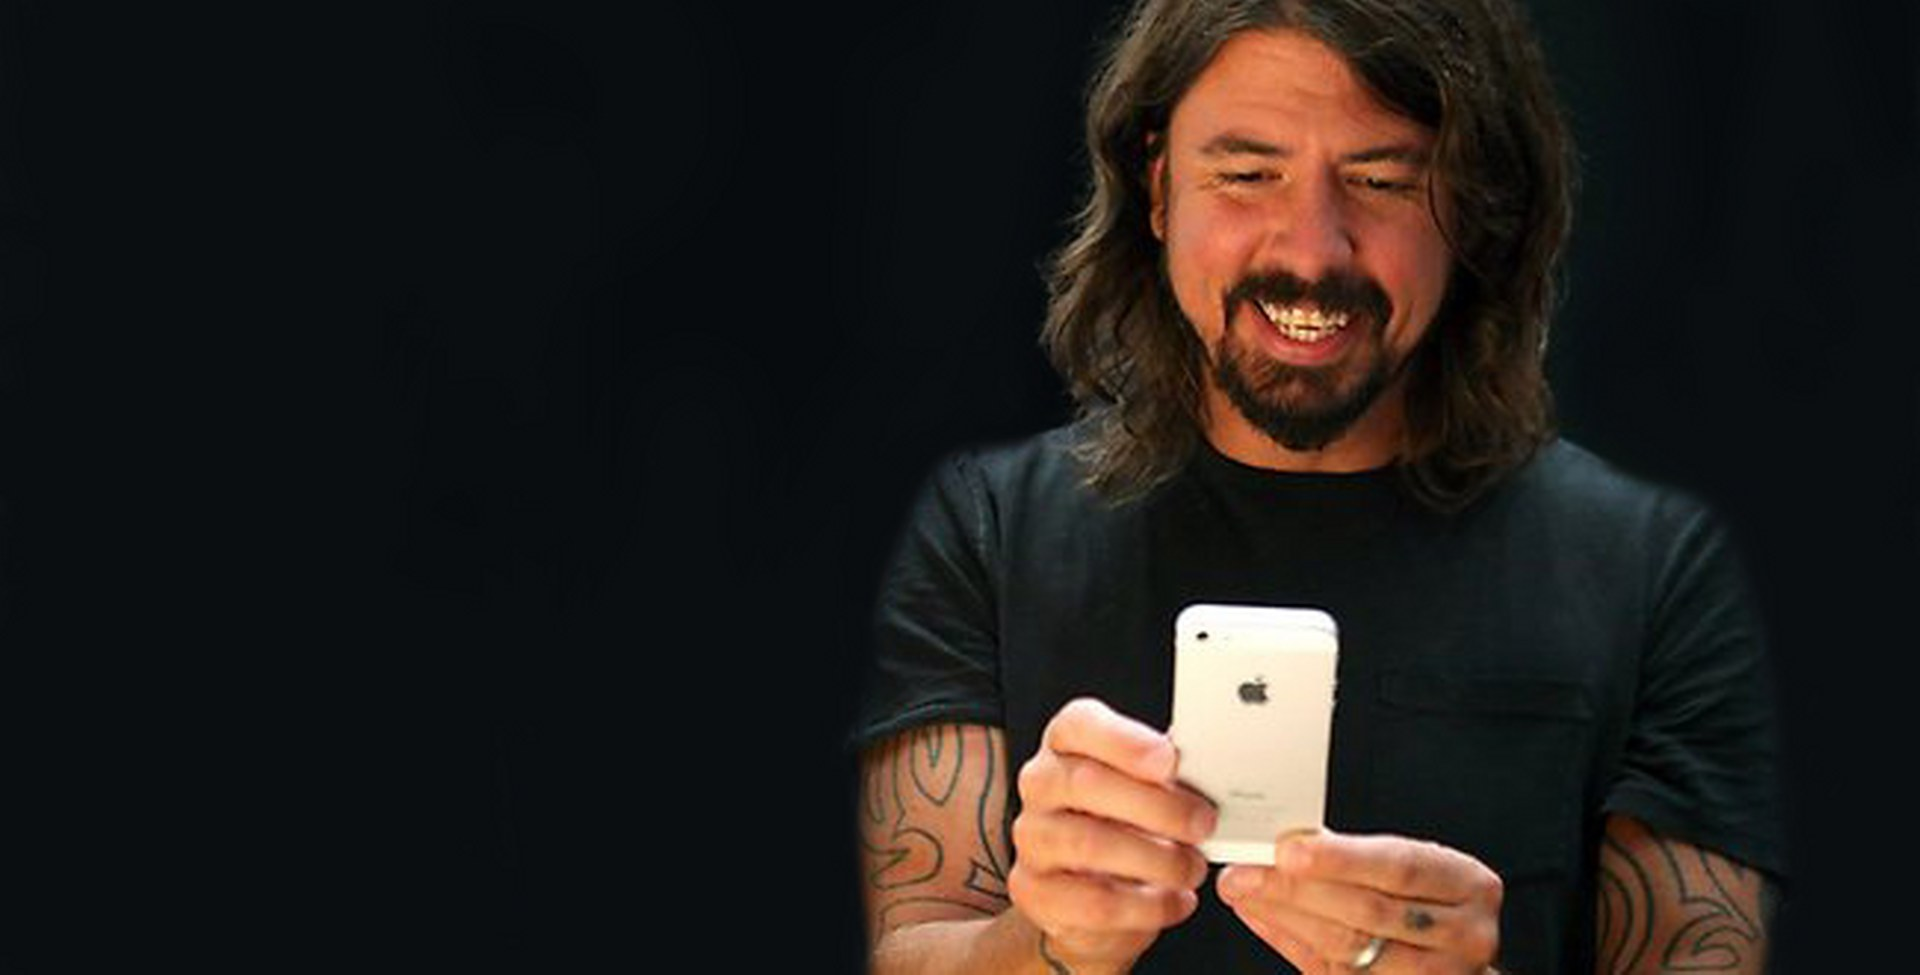 dave-grohl telefoon_1920x975